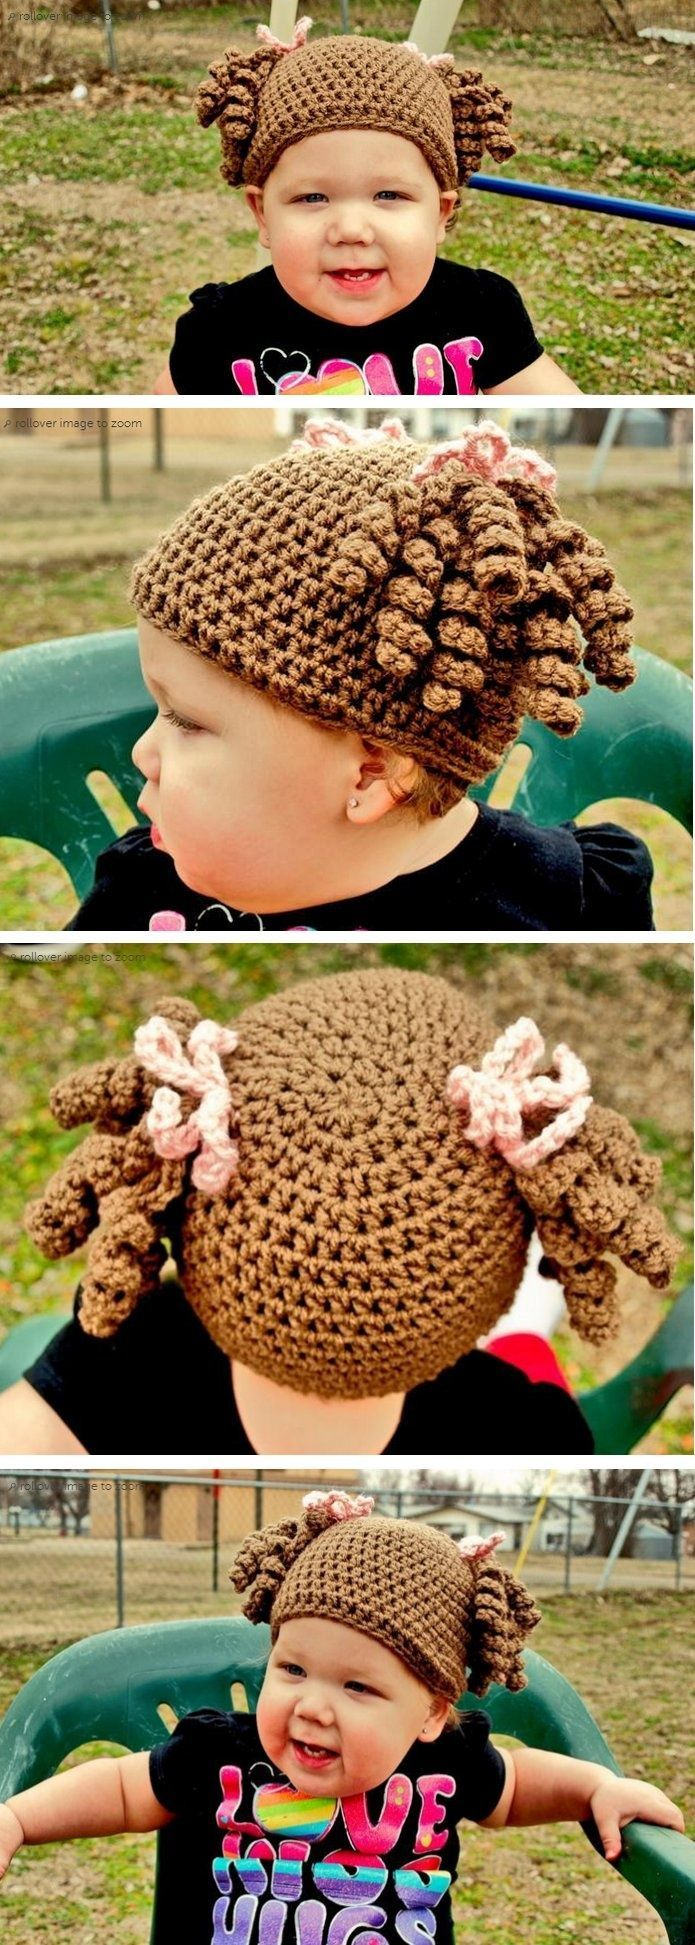 Little Miss Curly Q hat - Just make a basic beanie and add some curls and bows, reminds me of a Cabbage Patch Kid *Inspiration*.